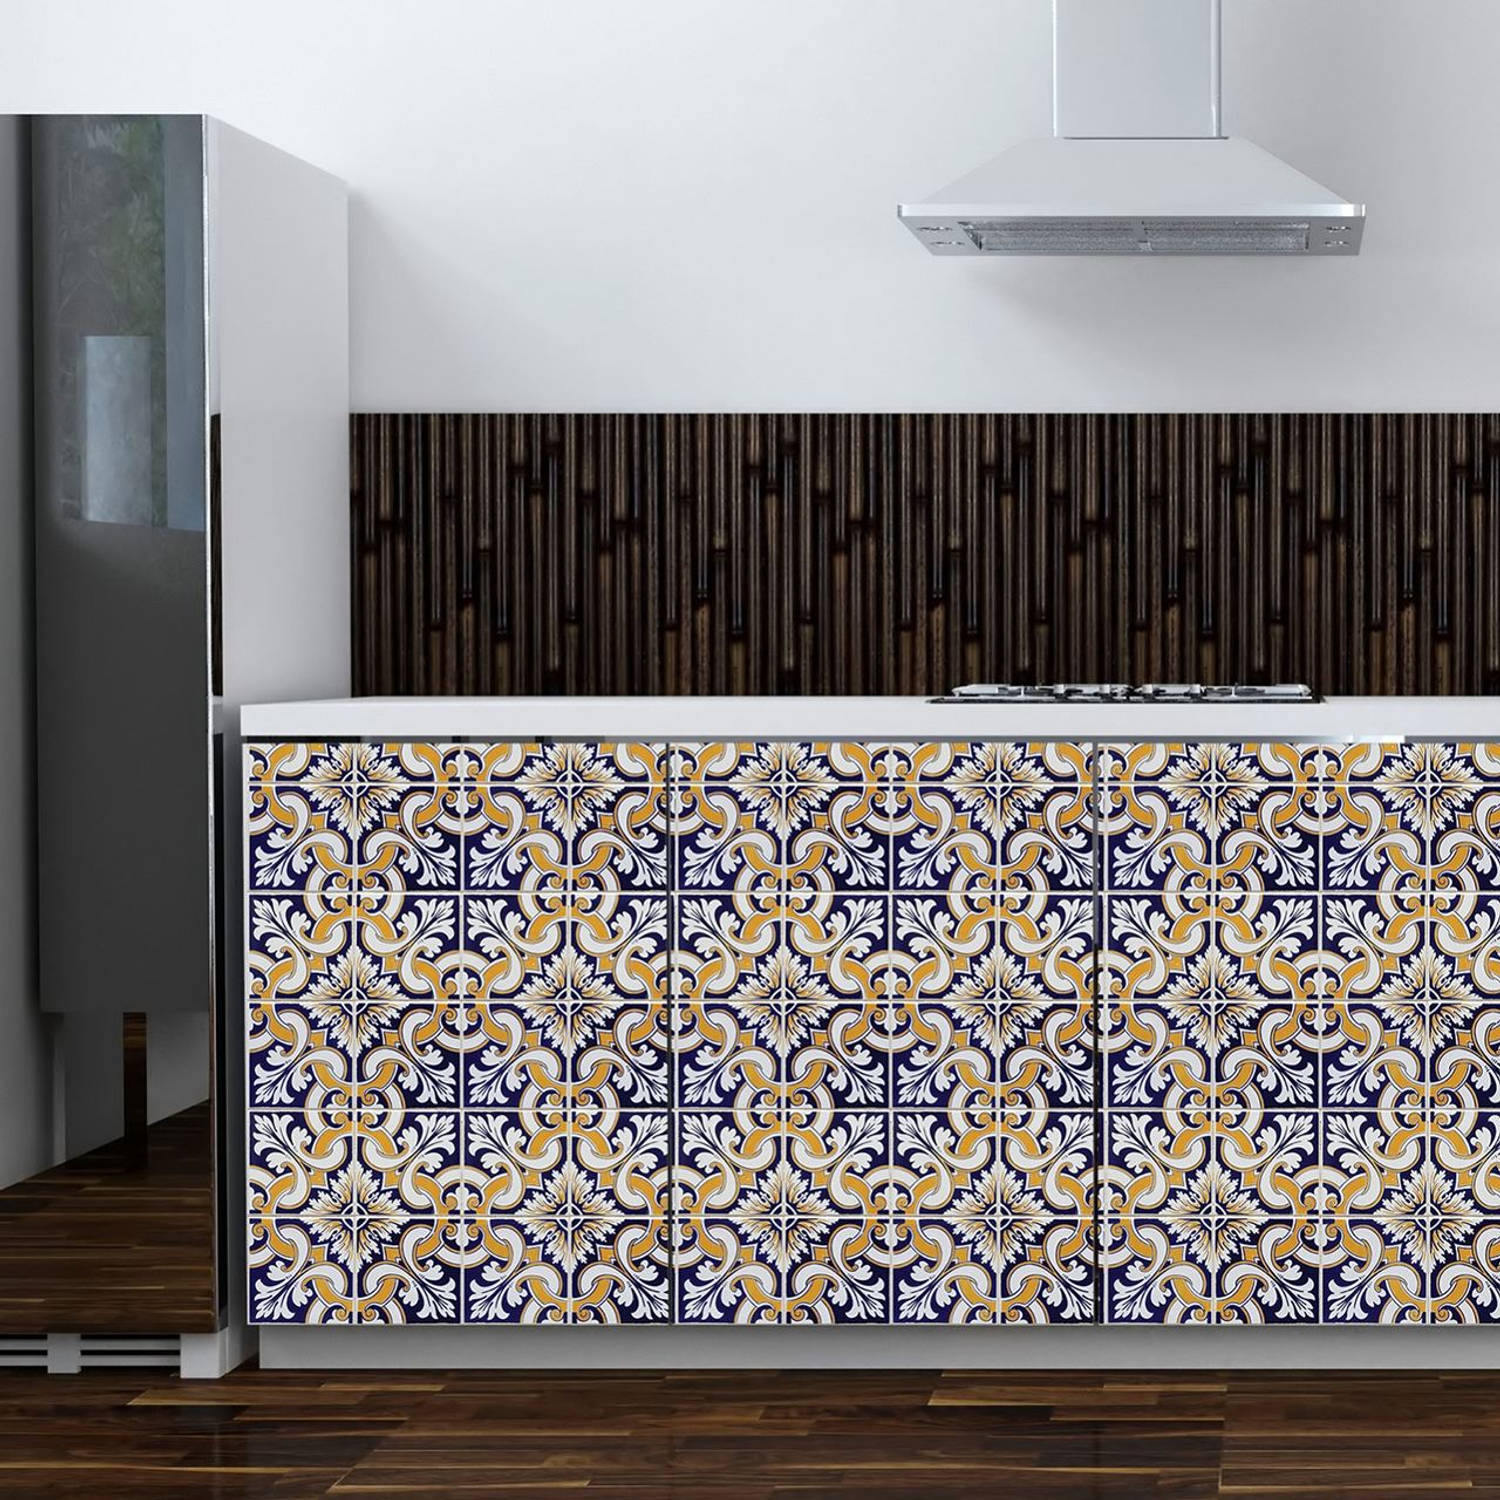 Walplus muur decoratie sticker - talavera tegels 6 x stickervel